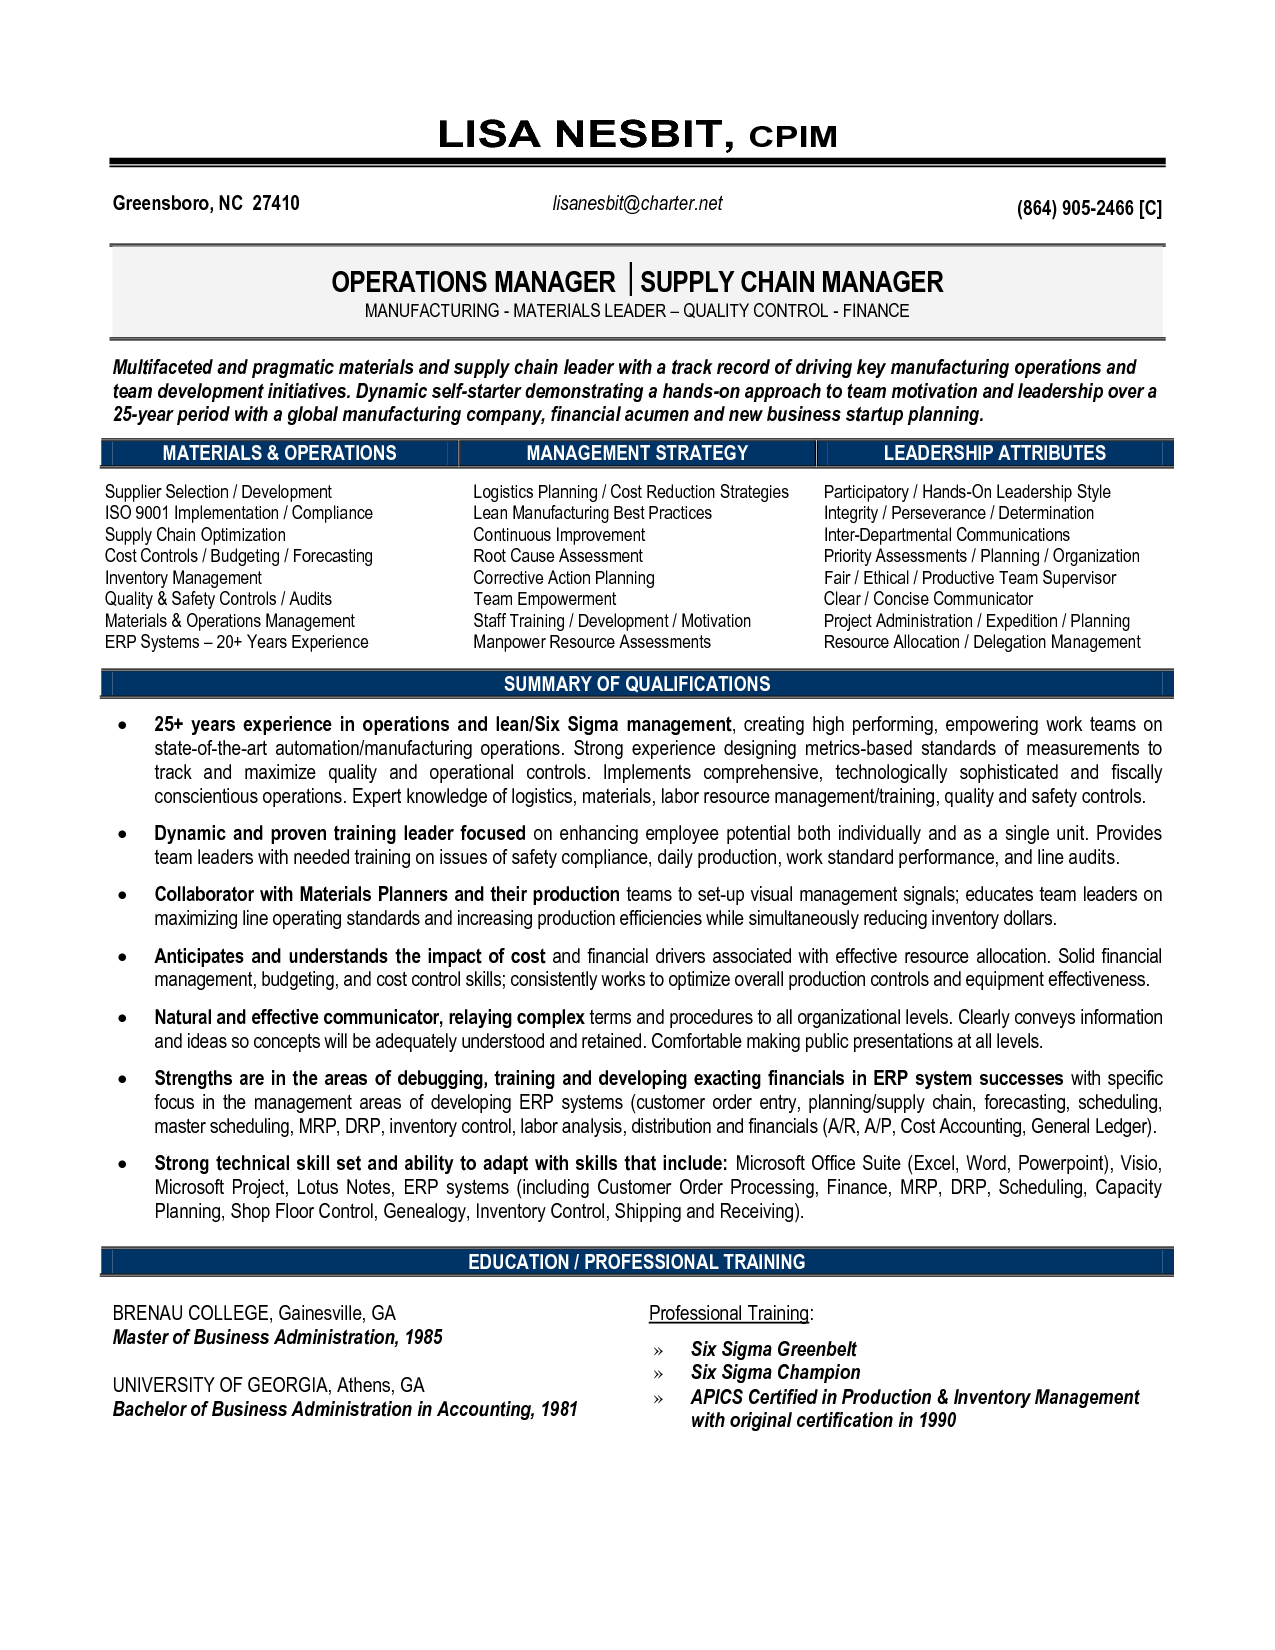 Resume Format For Purchase Manager Senior Logistic Management Resume Senior Manager Supply